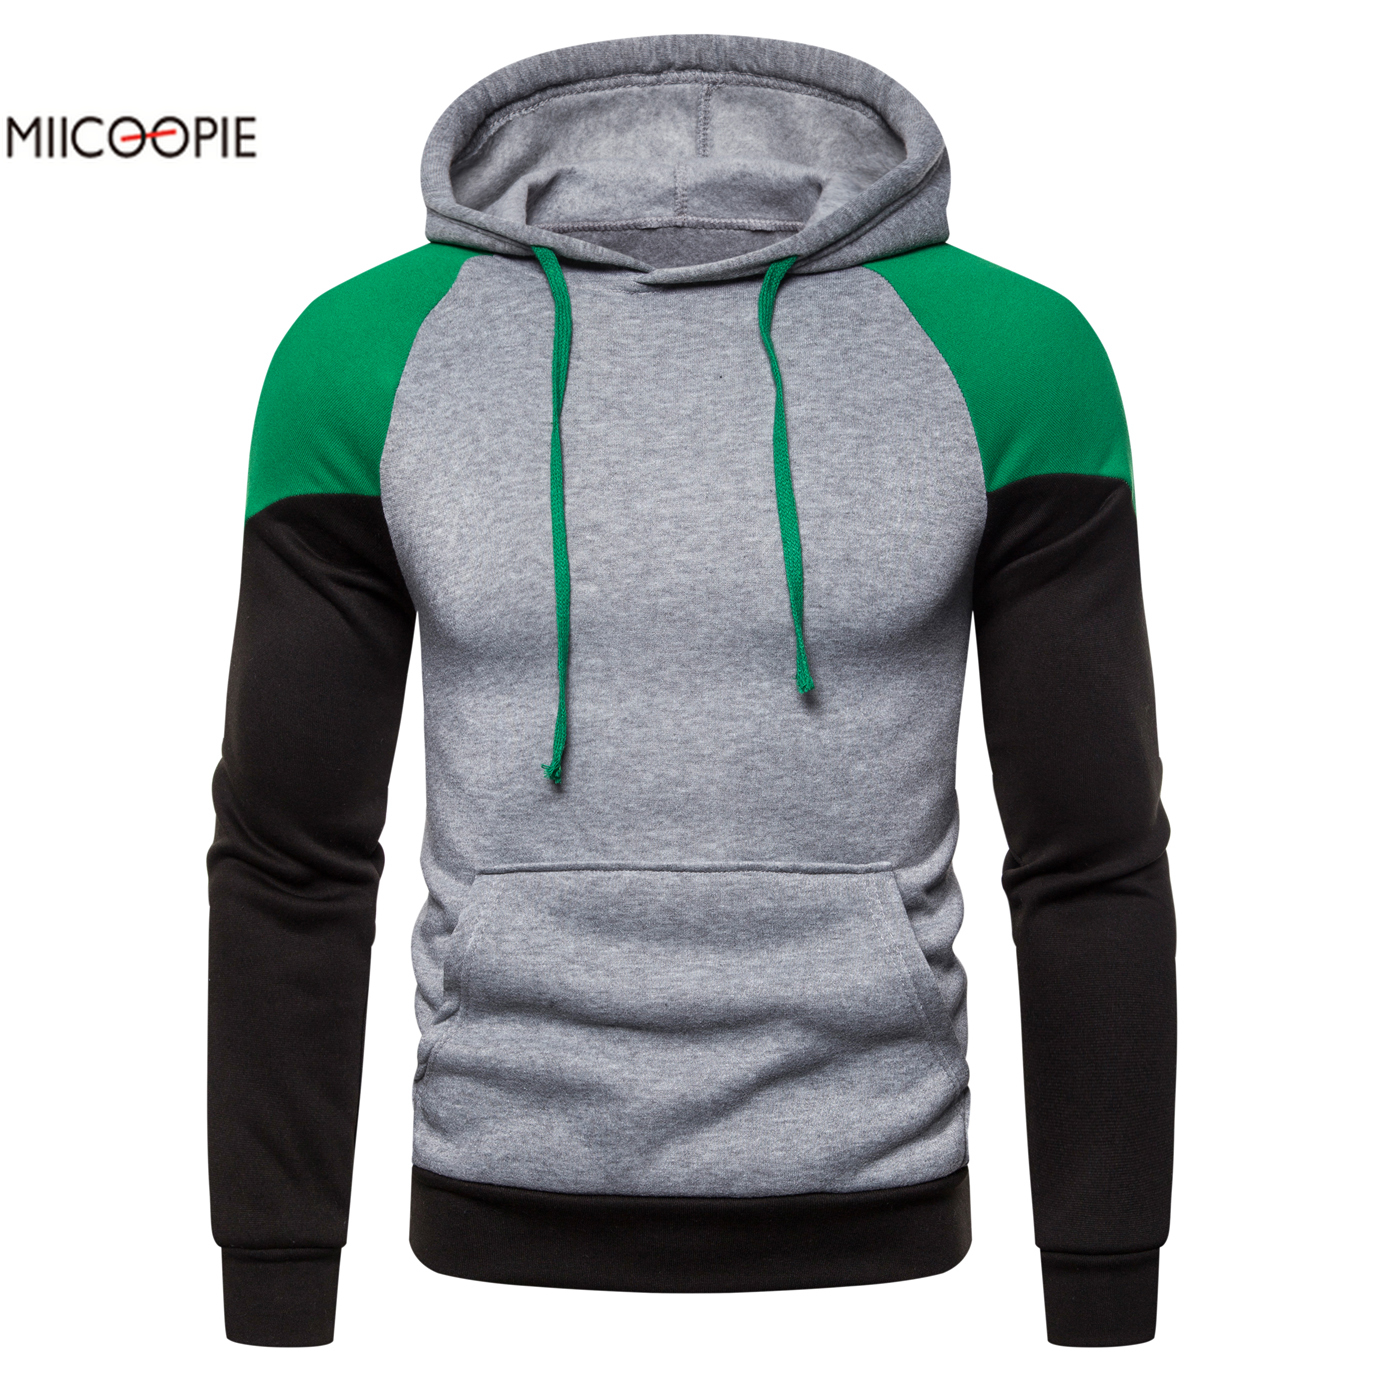 Miicoopie 2019 Mens Hoodies Autumn Brand Male Long Sleeve Patchwork Sweatshirt Hoodies